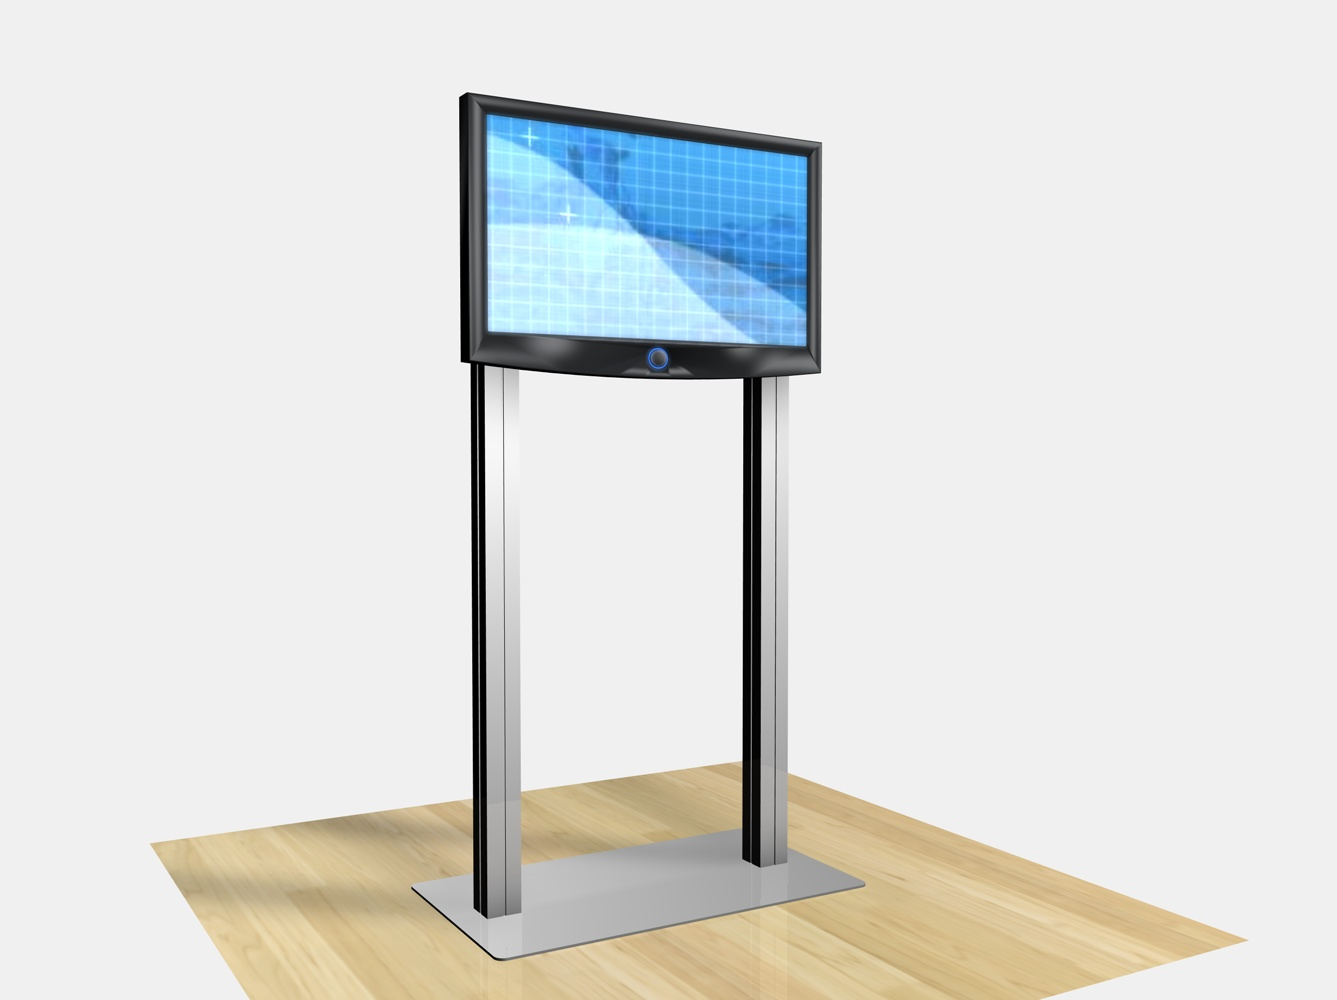 Exhibit Design Search RE 1229 Large Monitor Kiosk